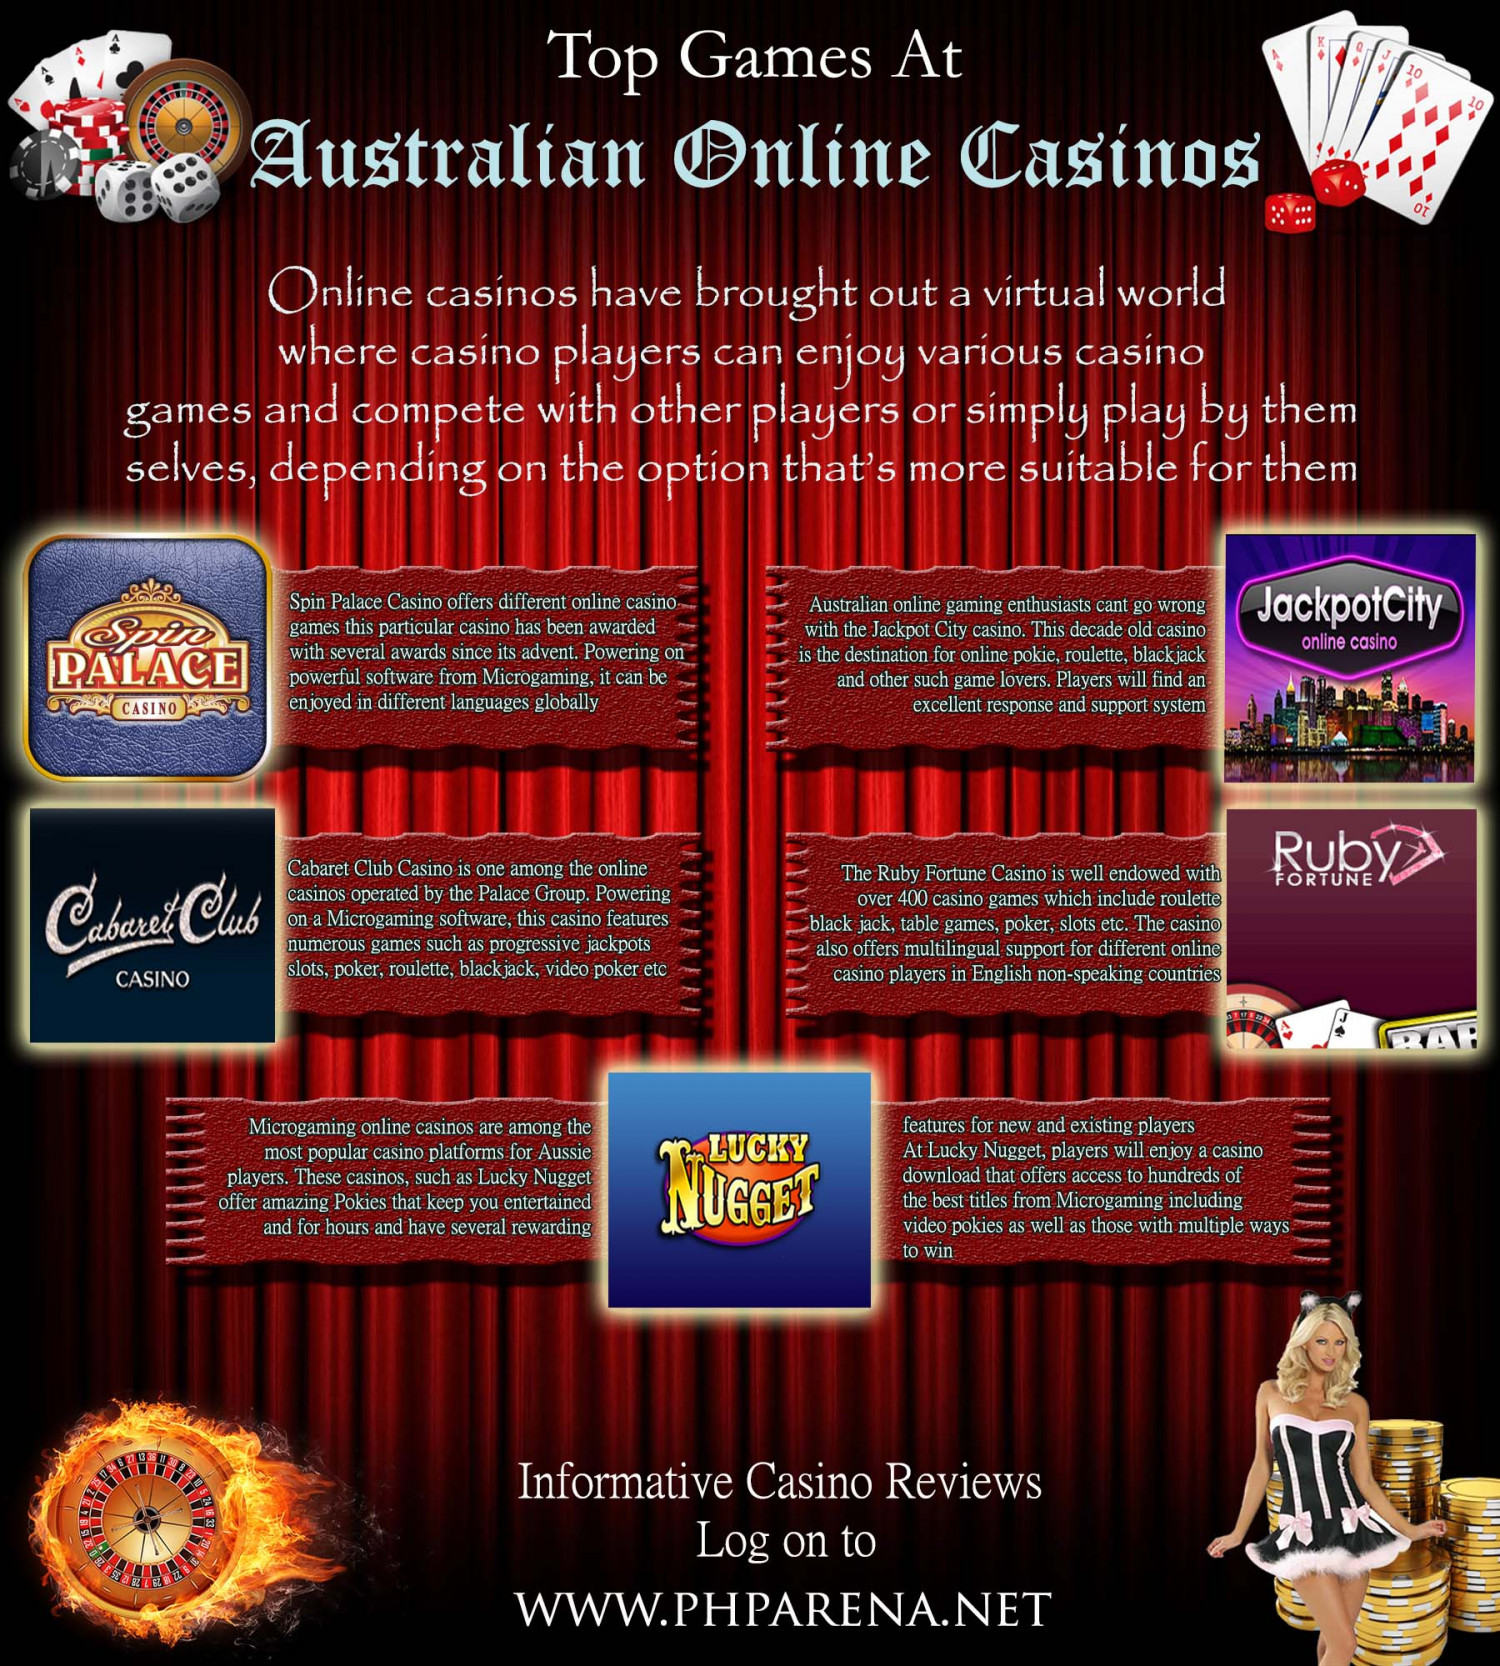 New Zealand Online Casinos - Best Sites for Kiwis